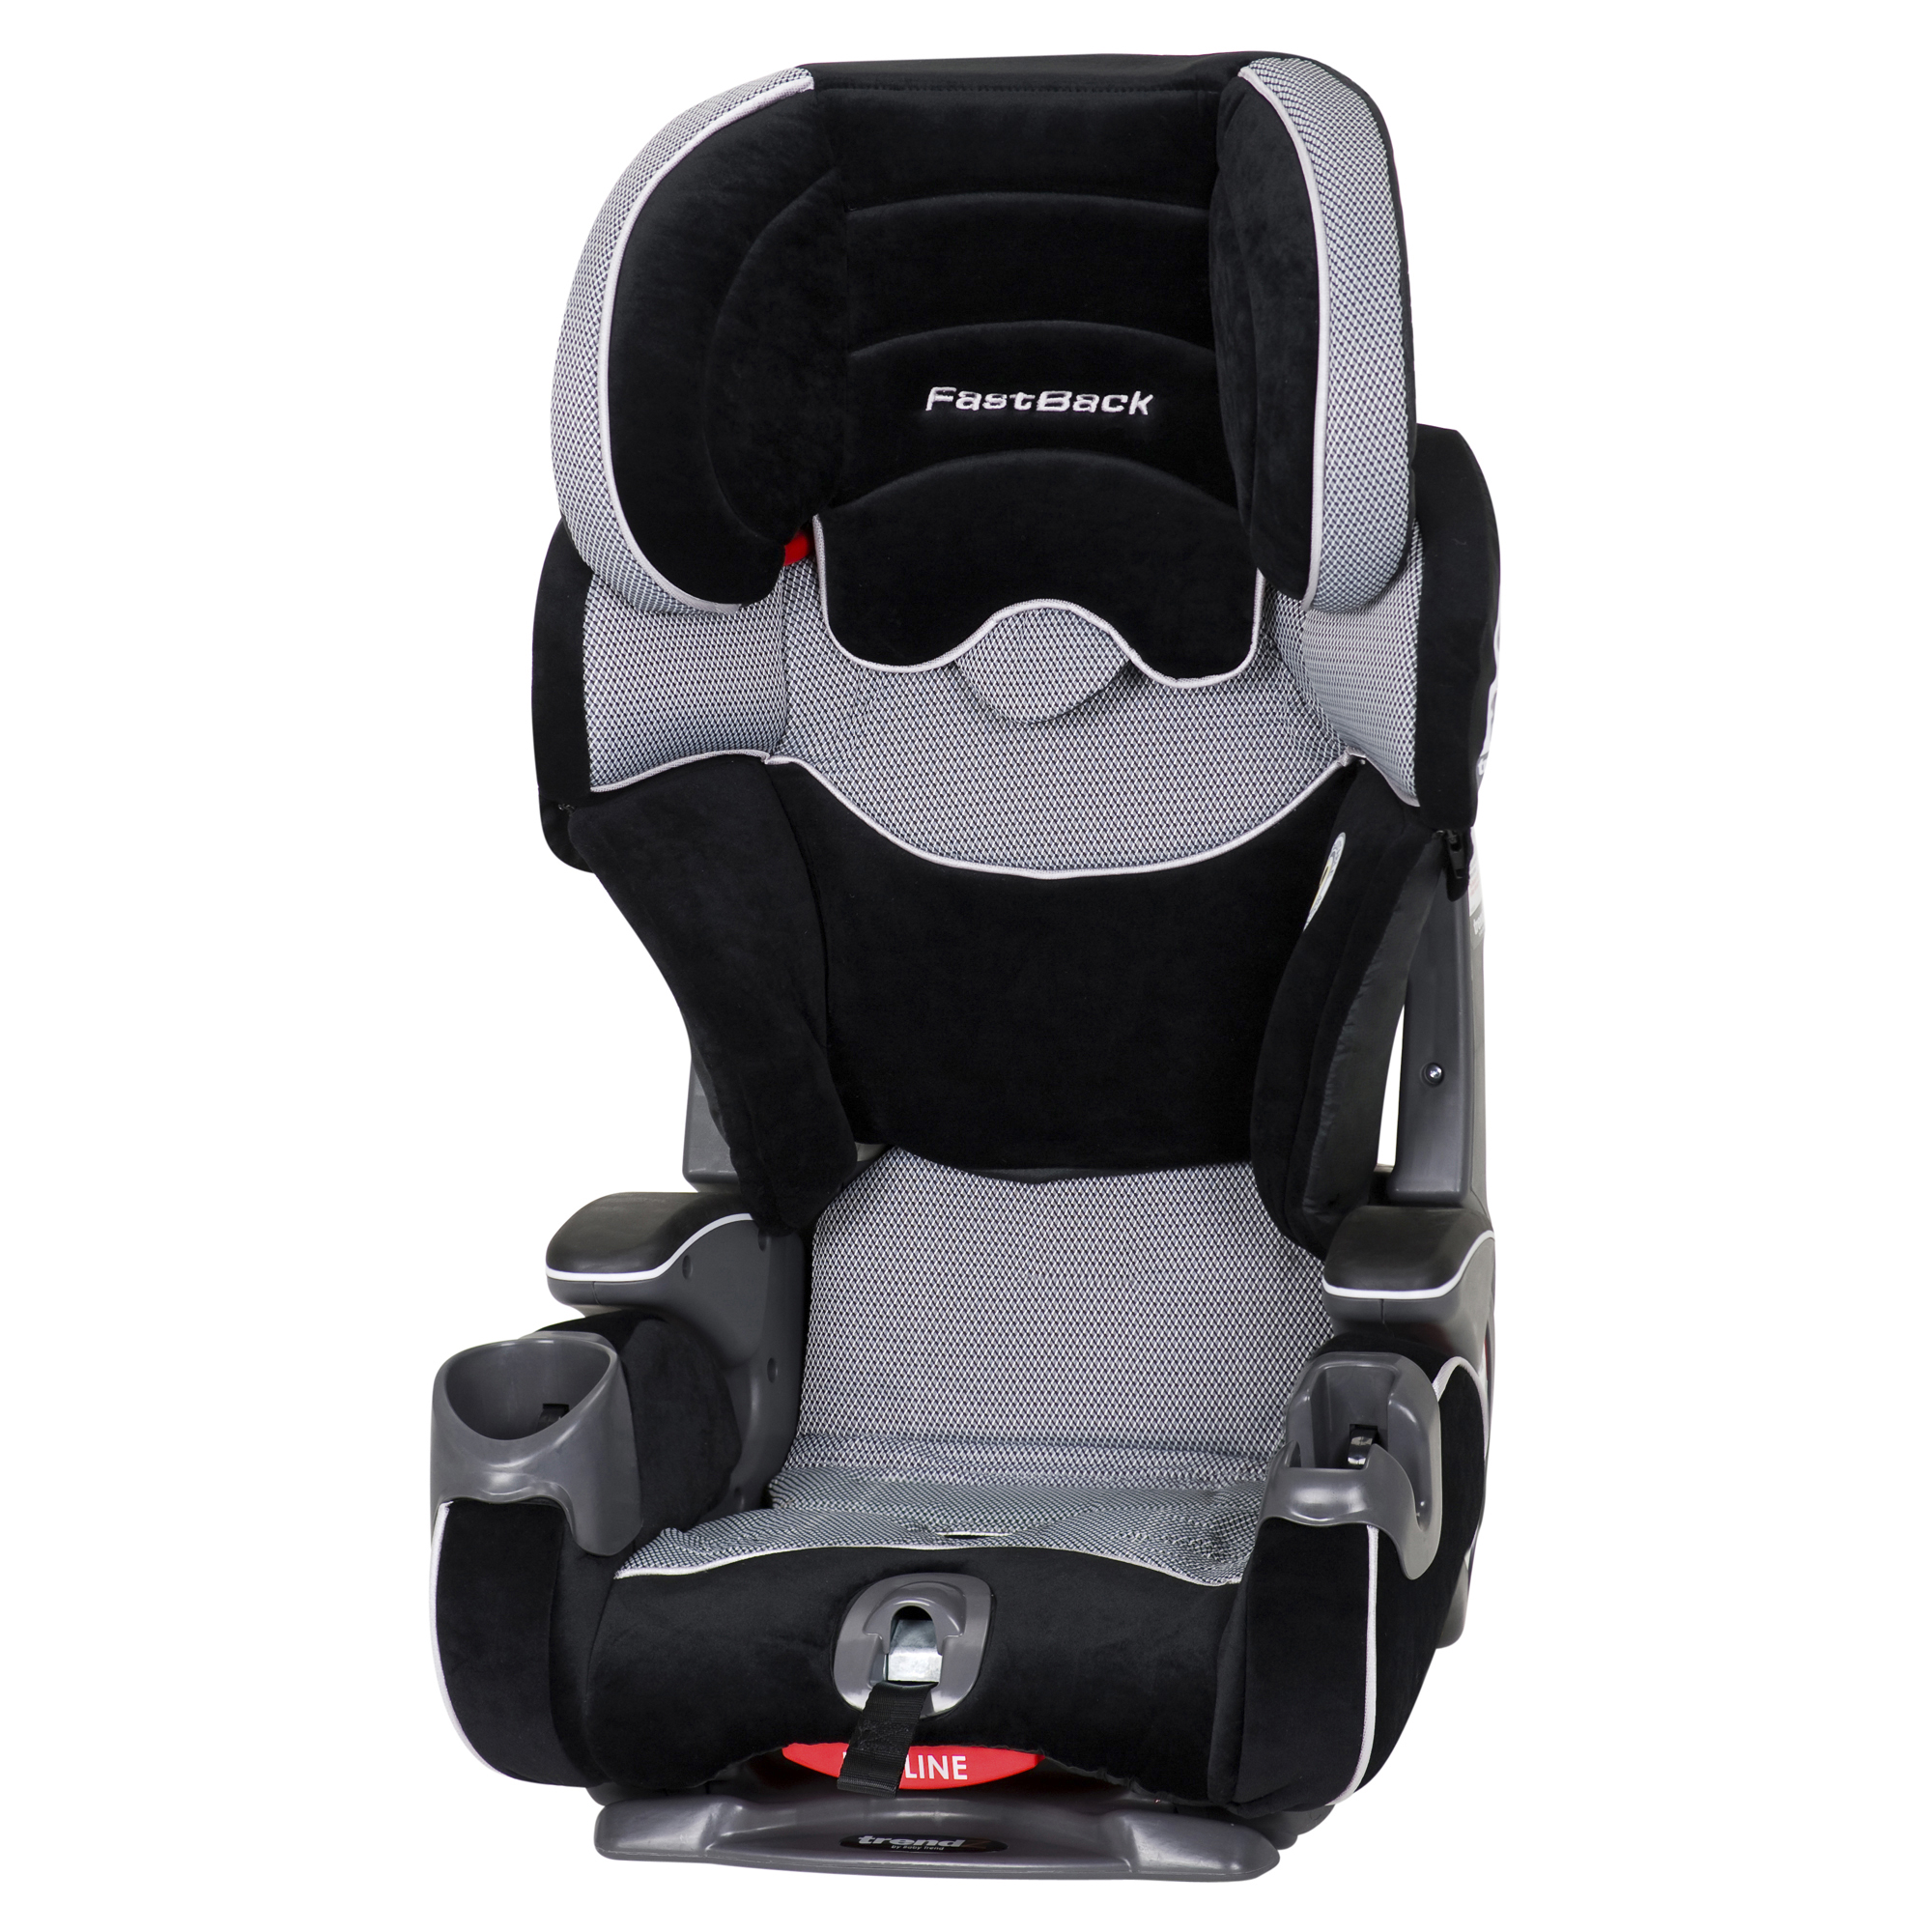 Baby Trend Trendz Fastback 3 In 1 Car Seat